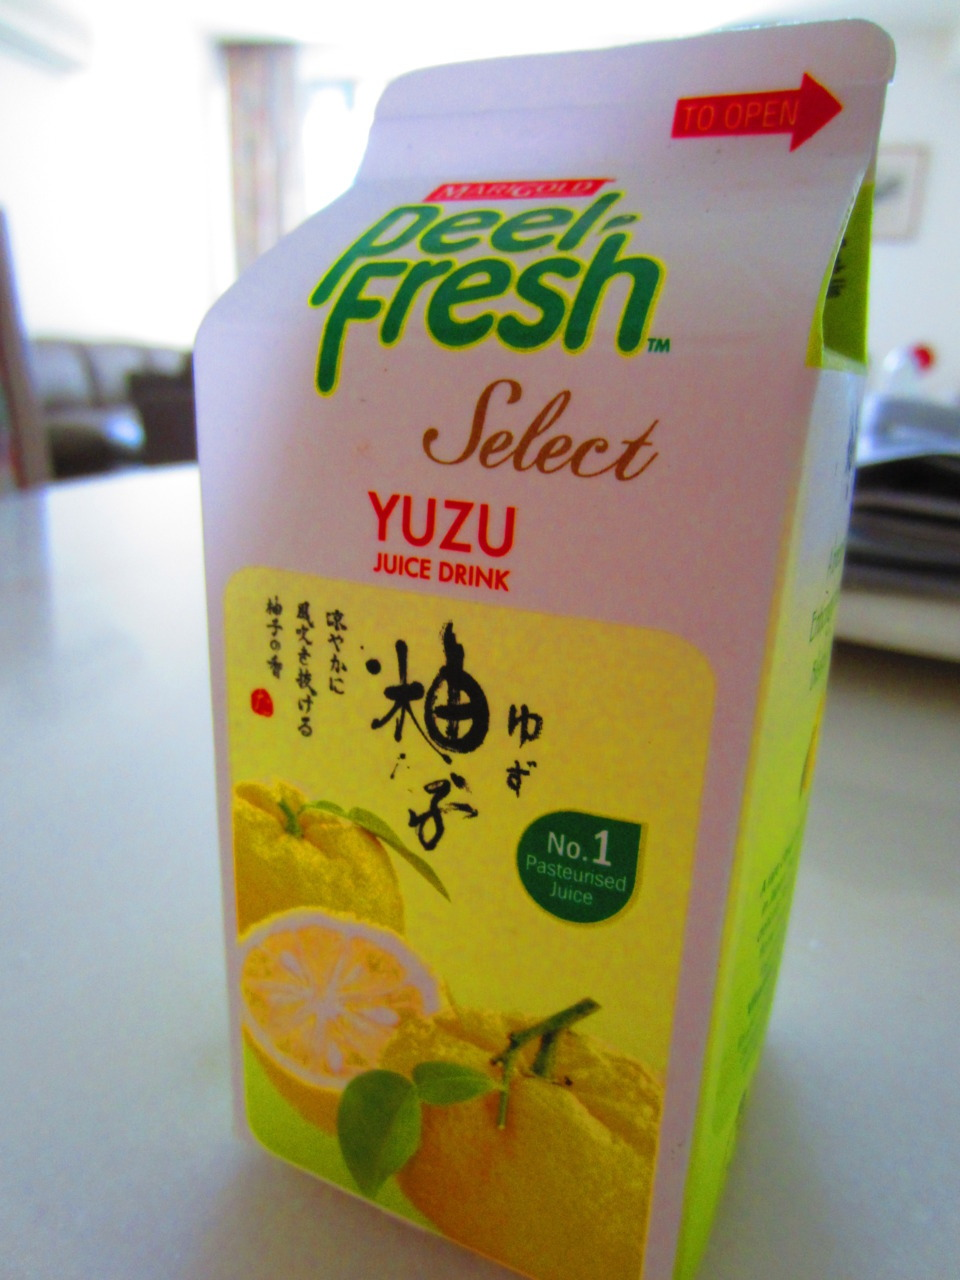 Peel Fresh Yuzu Juice So I drank this last year… lol and forgot to give a review. (Alright, that's a lie. I got really lazy.) Well this was fun to try? Wasn't as sweet as expected but very refreshing. I'd prefer my yuzu rock candy any day though :)